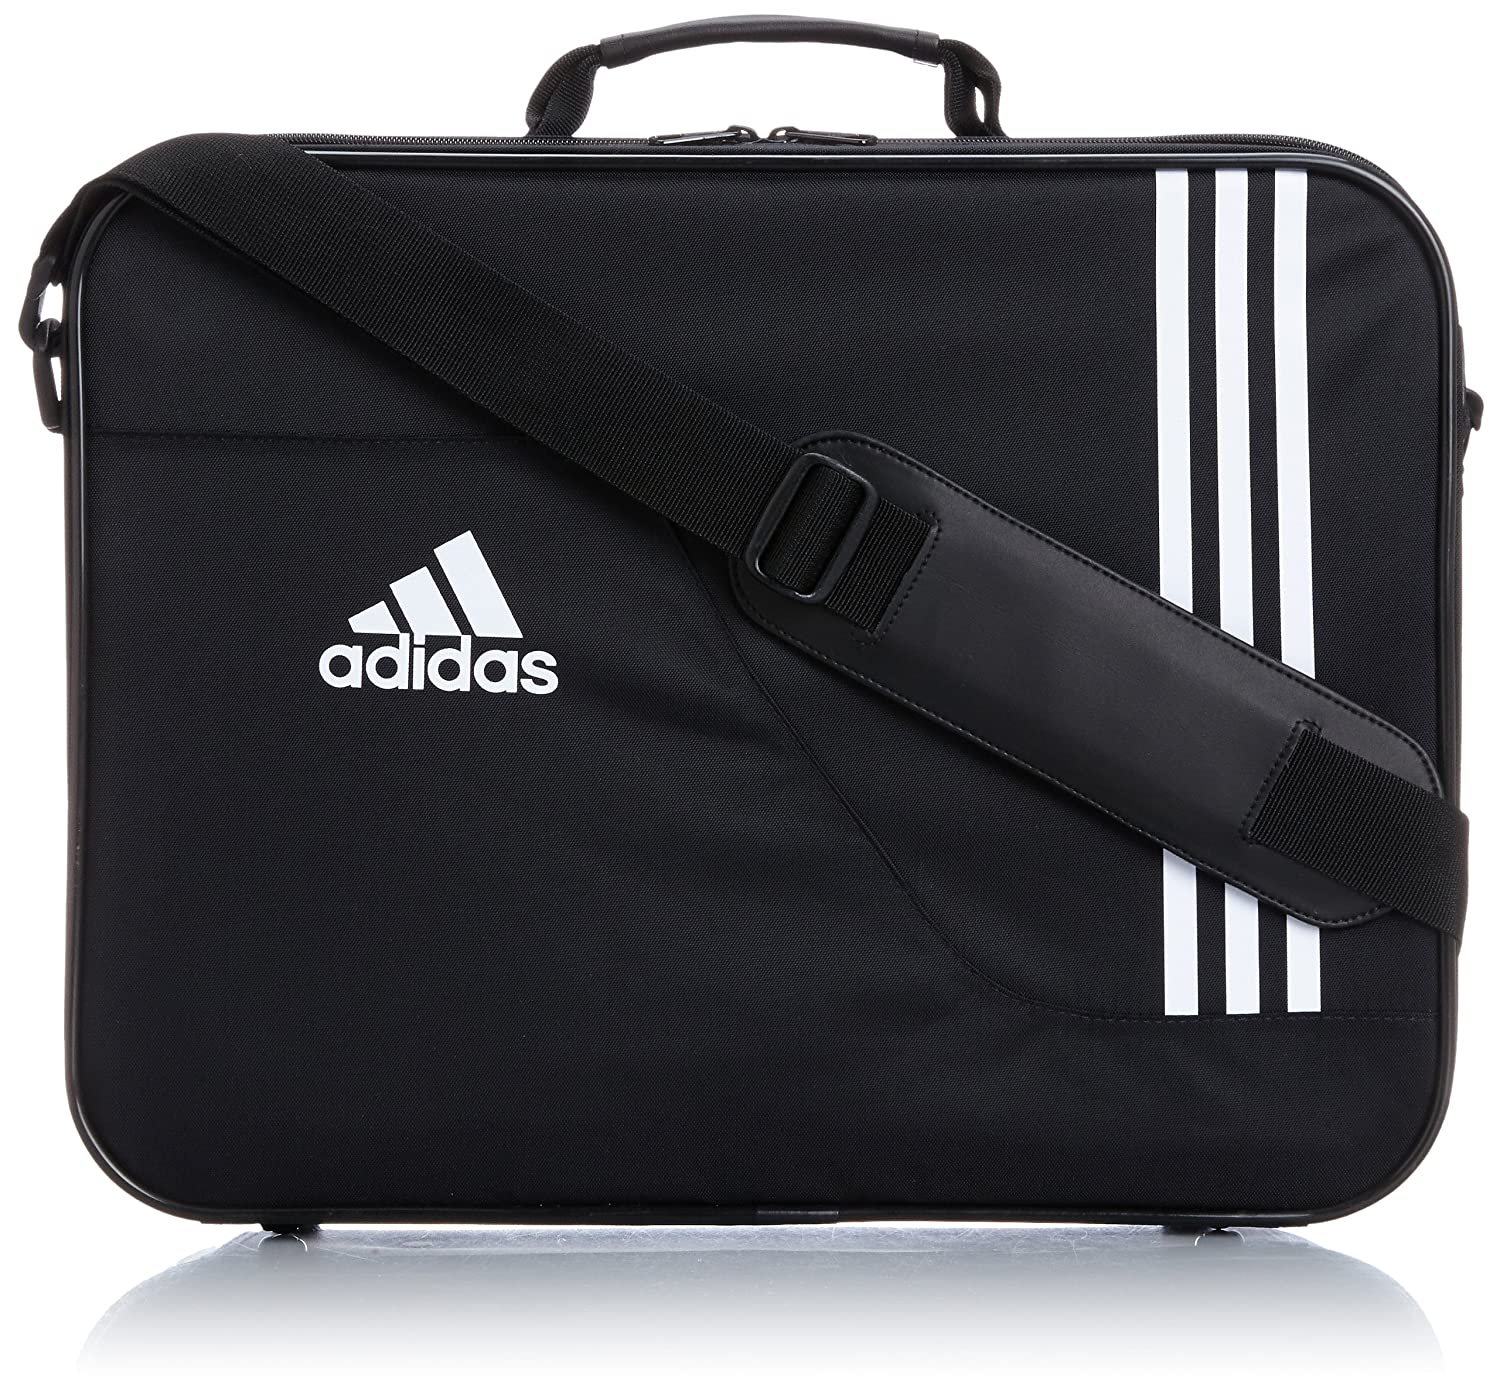 Adidas FB Medical Case Black/White 15 x 43.5 x 33.5 cm 22 Liter Z10086